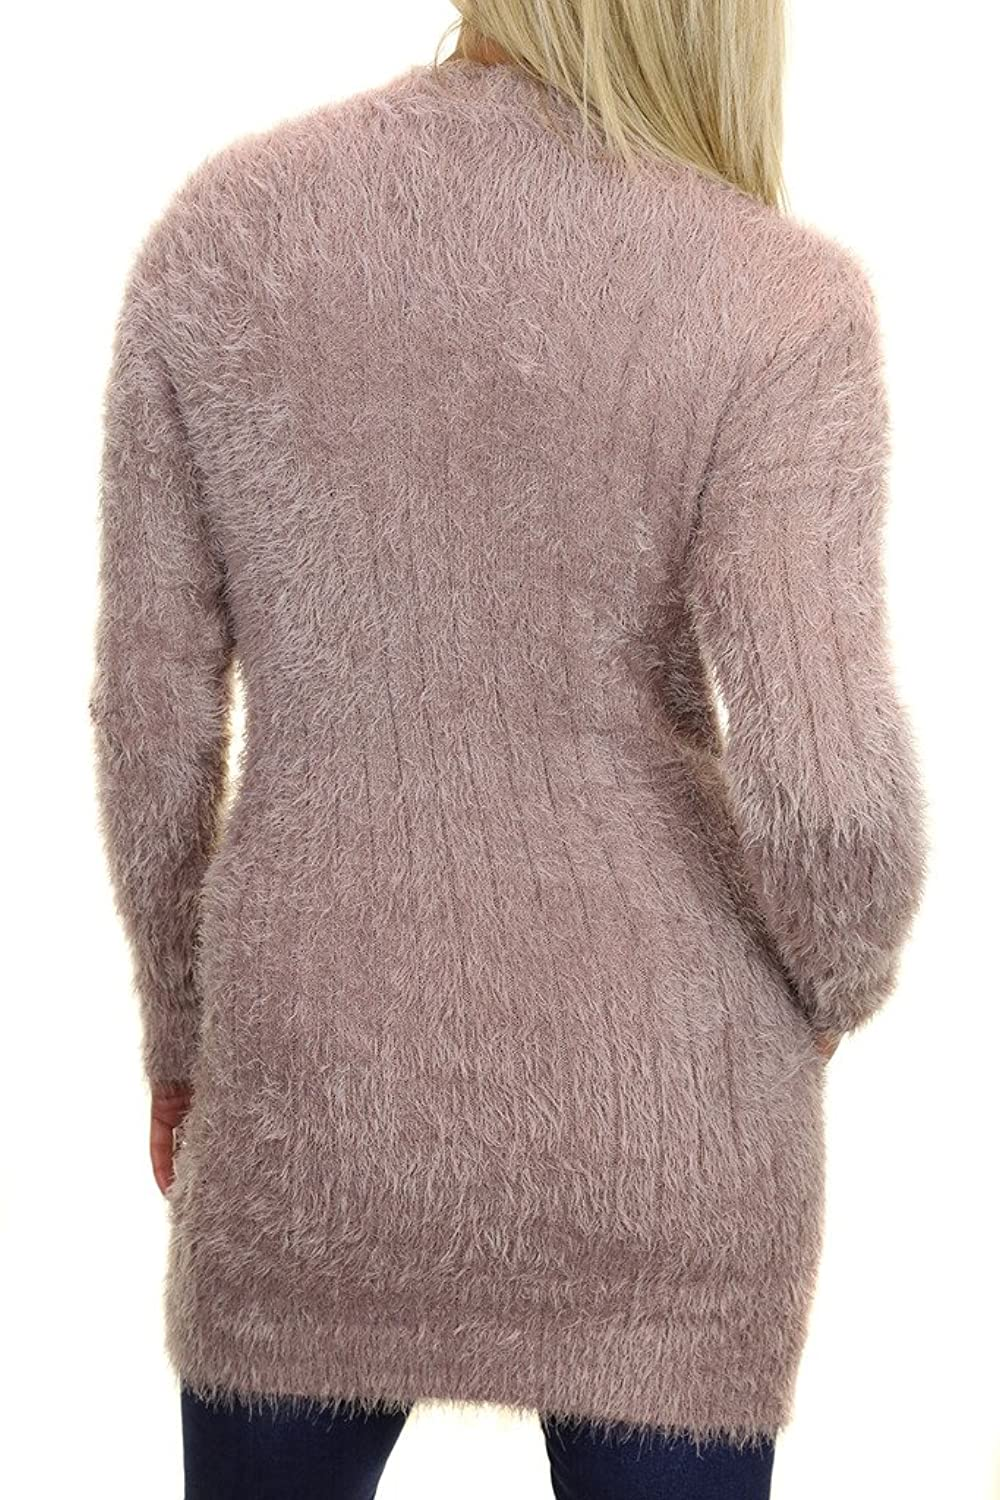 ICE (7499-5) Fluffy Hair Knit Long Tunic Jumper Crew Neck Beige (ML)